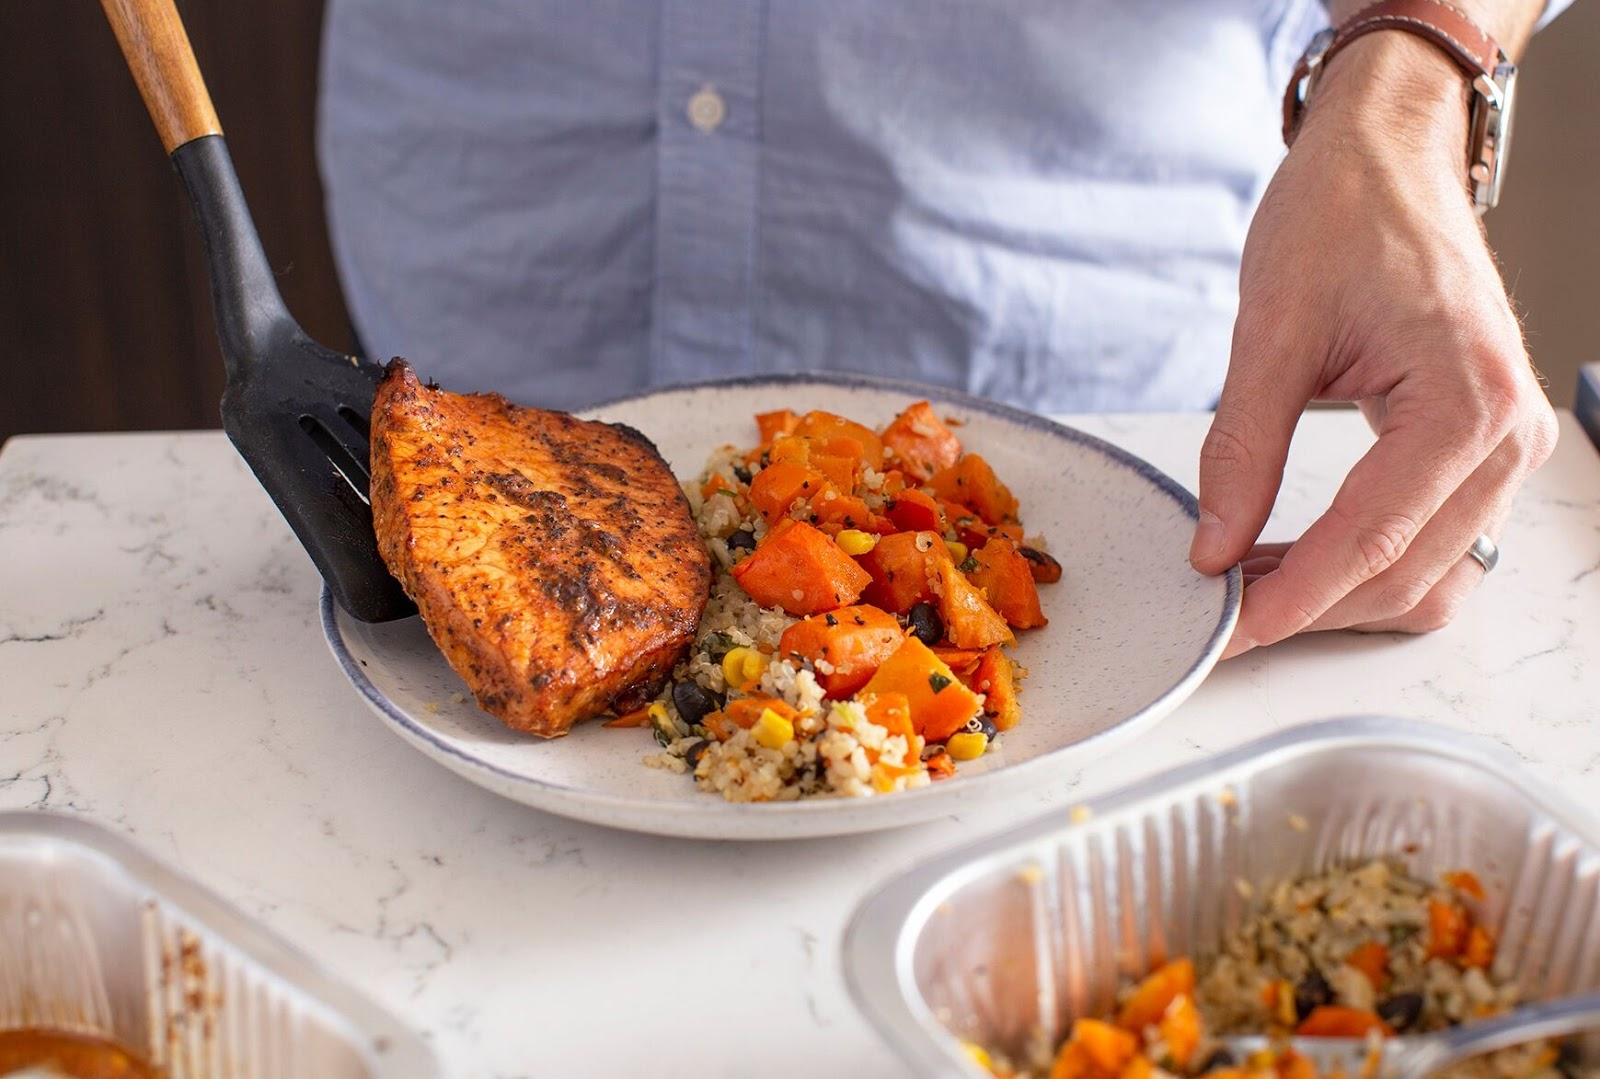 Prepared Meals Delivered Get The Scoop On 6 Popular Services